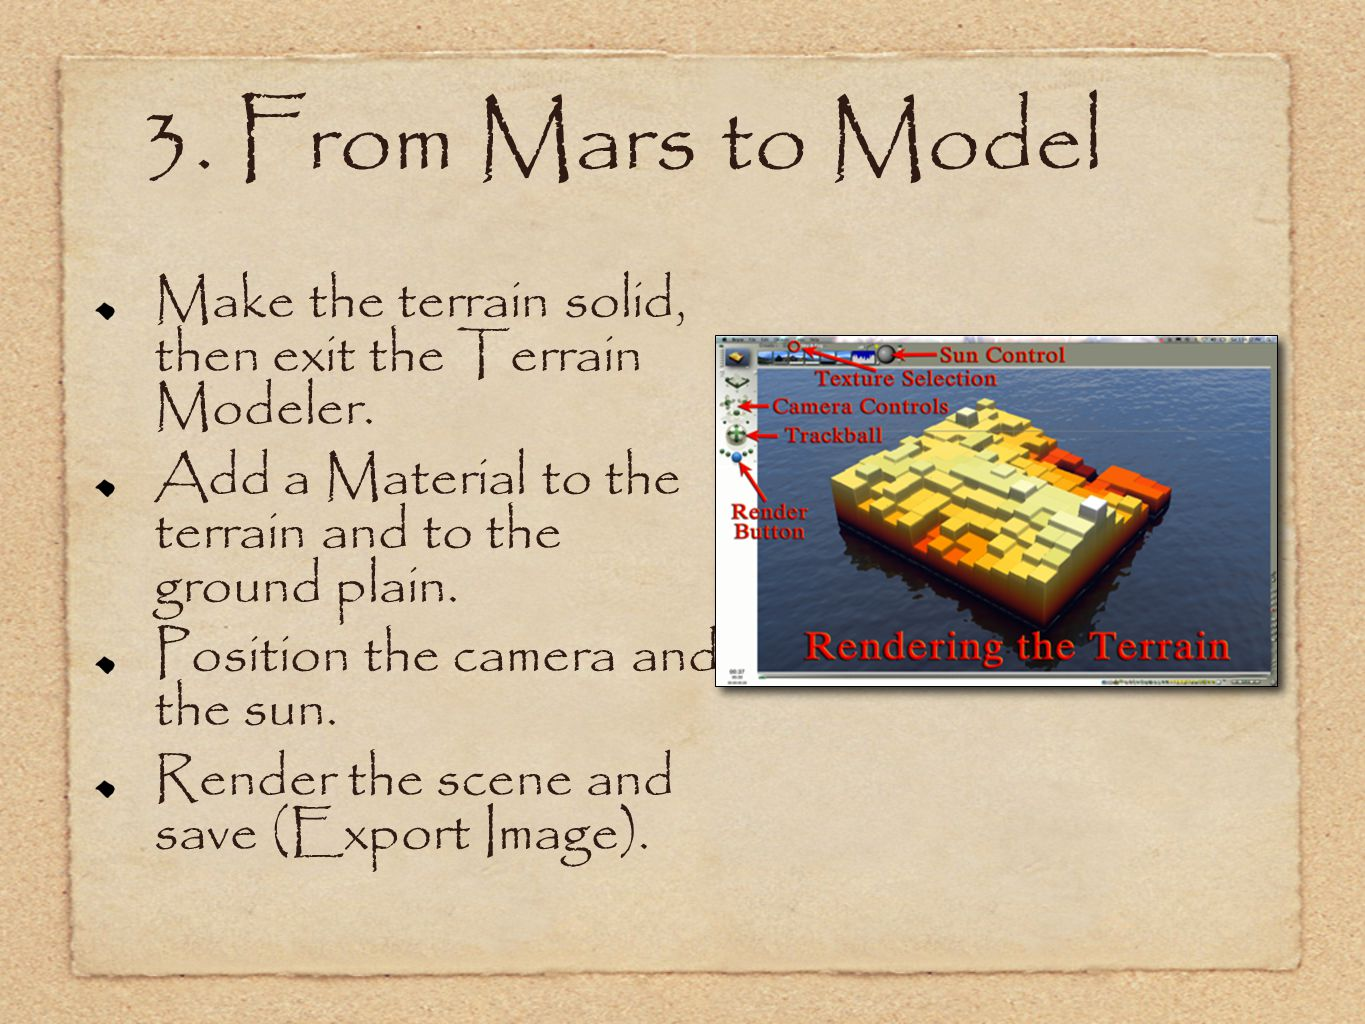 Make the terrain solid, then exit the Terrain Modeler.